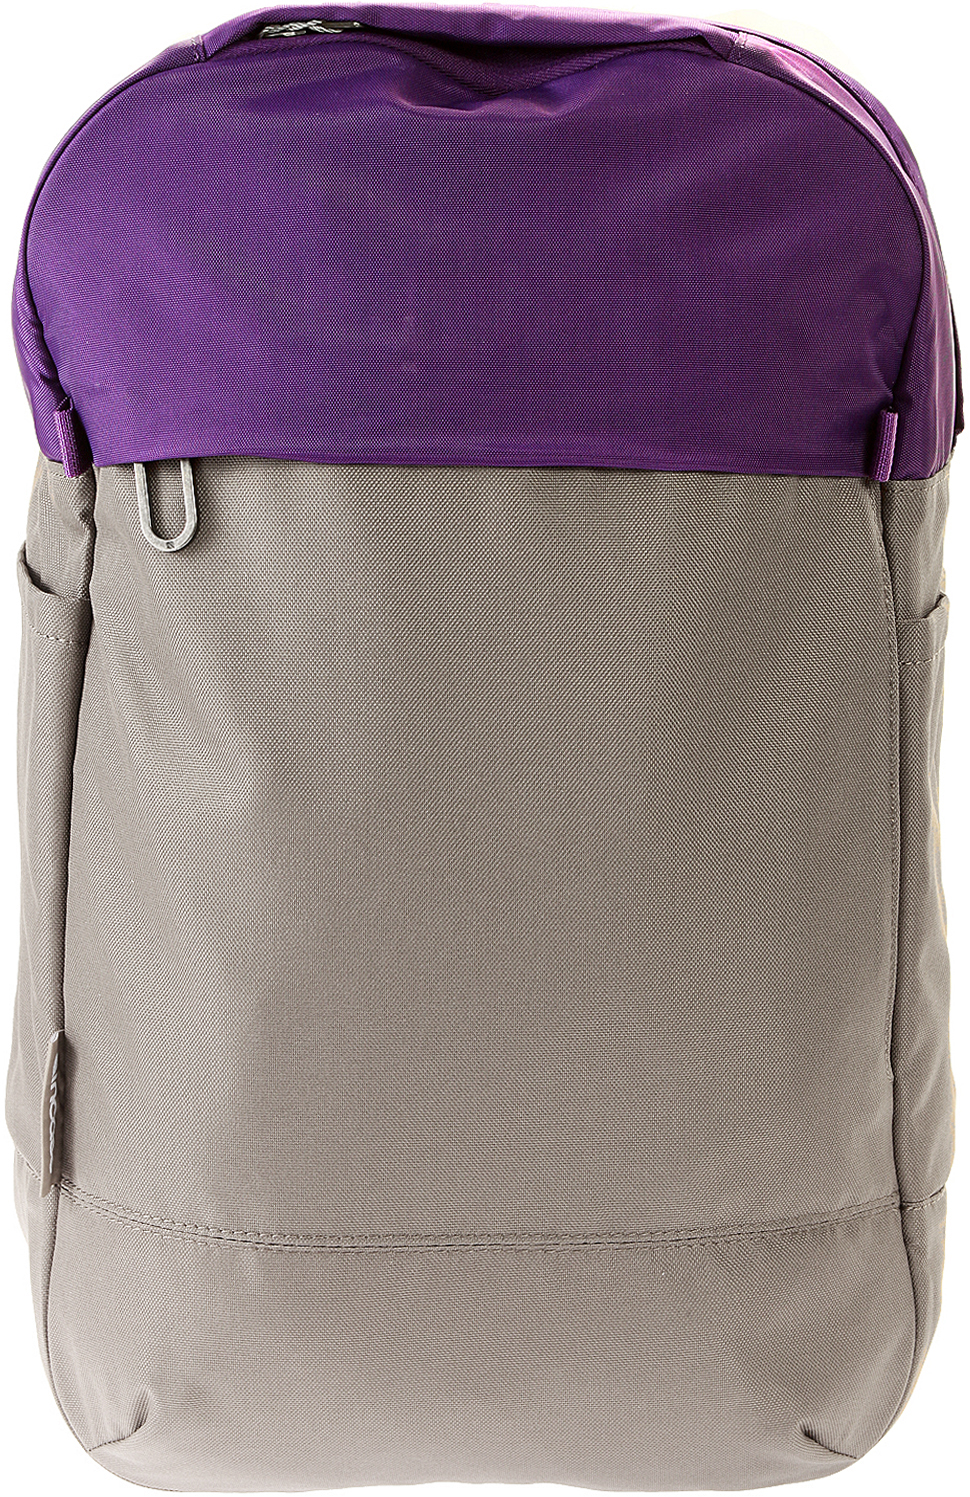 Incase Designs Corp Campus Compact Backpack CL55469